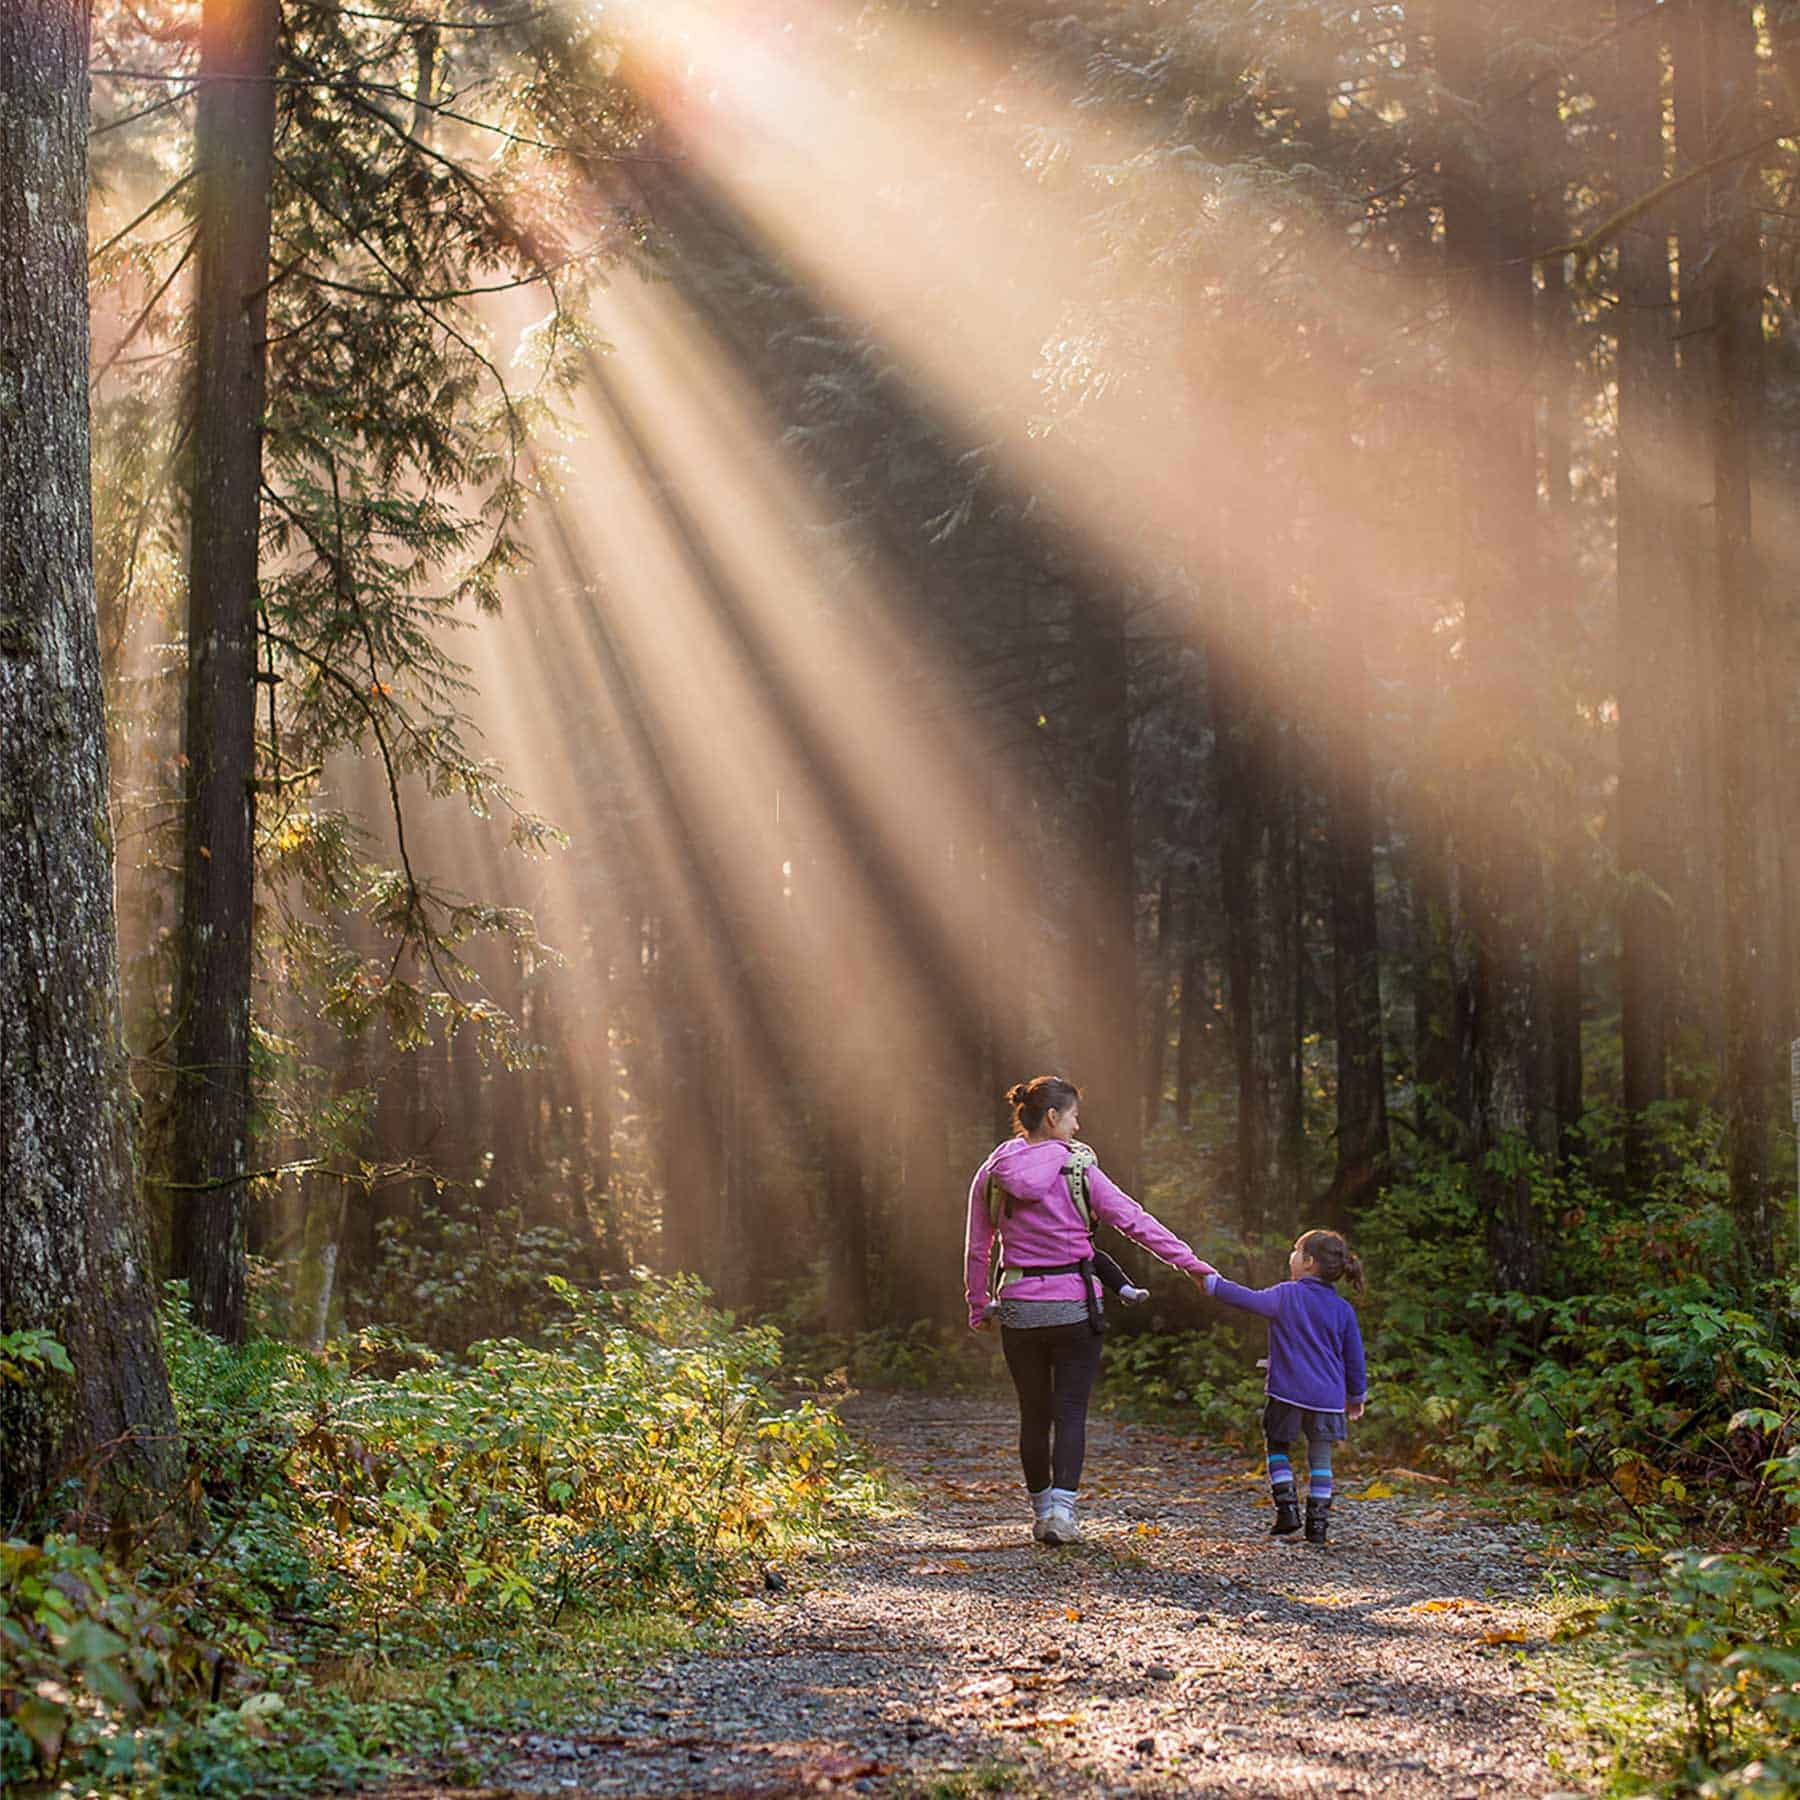 ASafePlace Mother Daughter Walking SunLight Forest 1